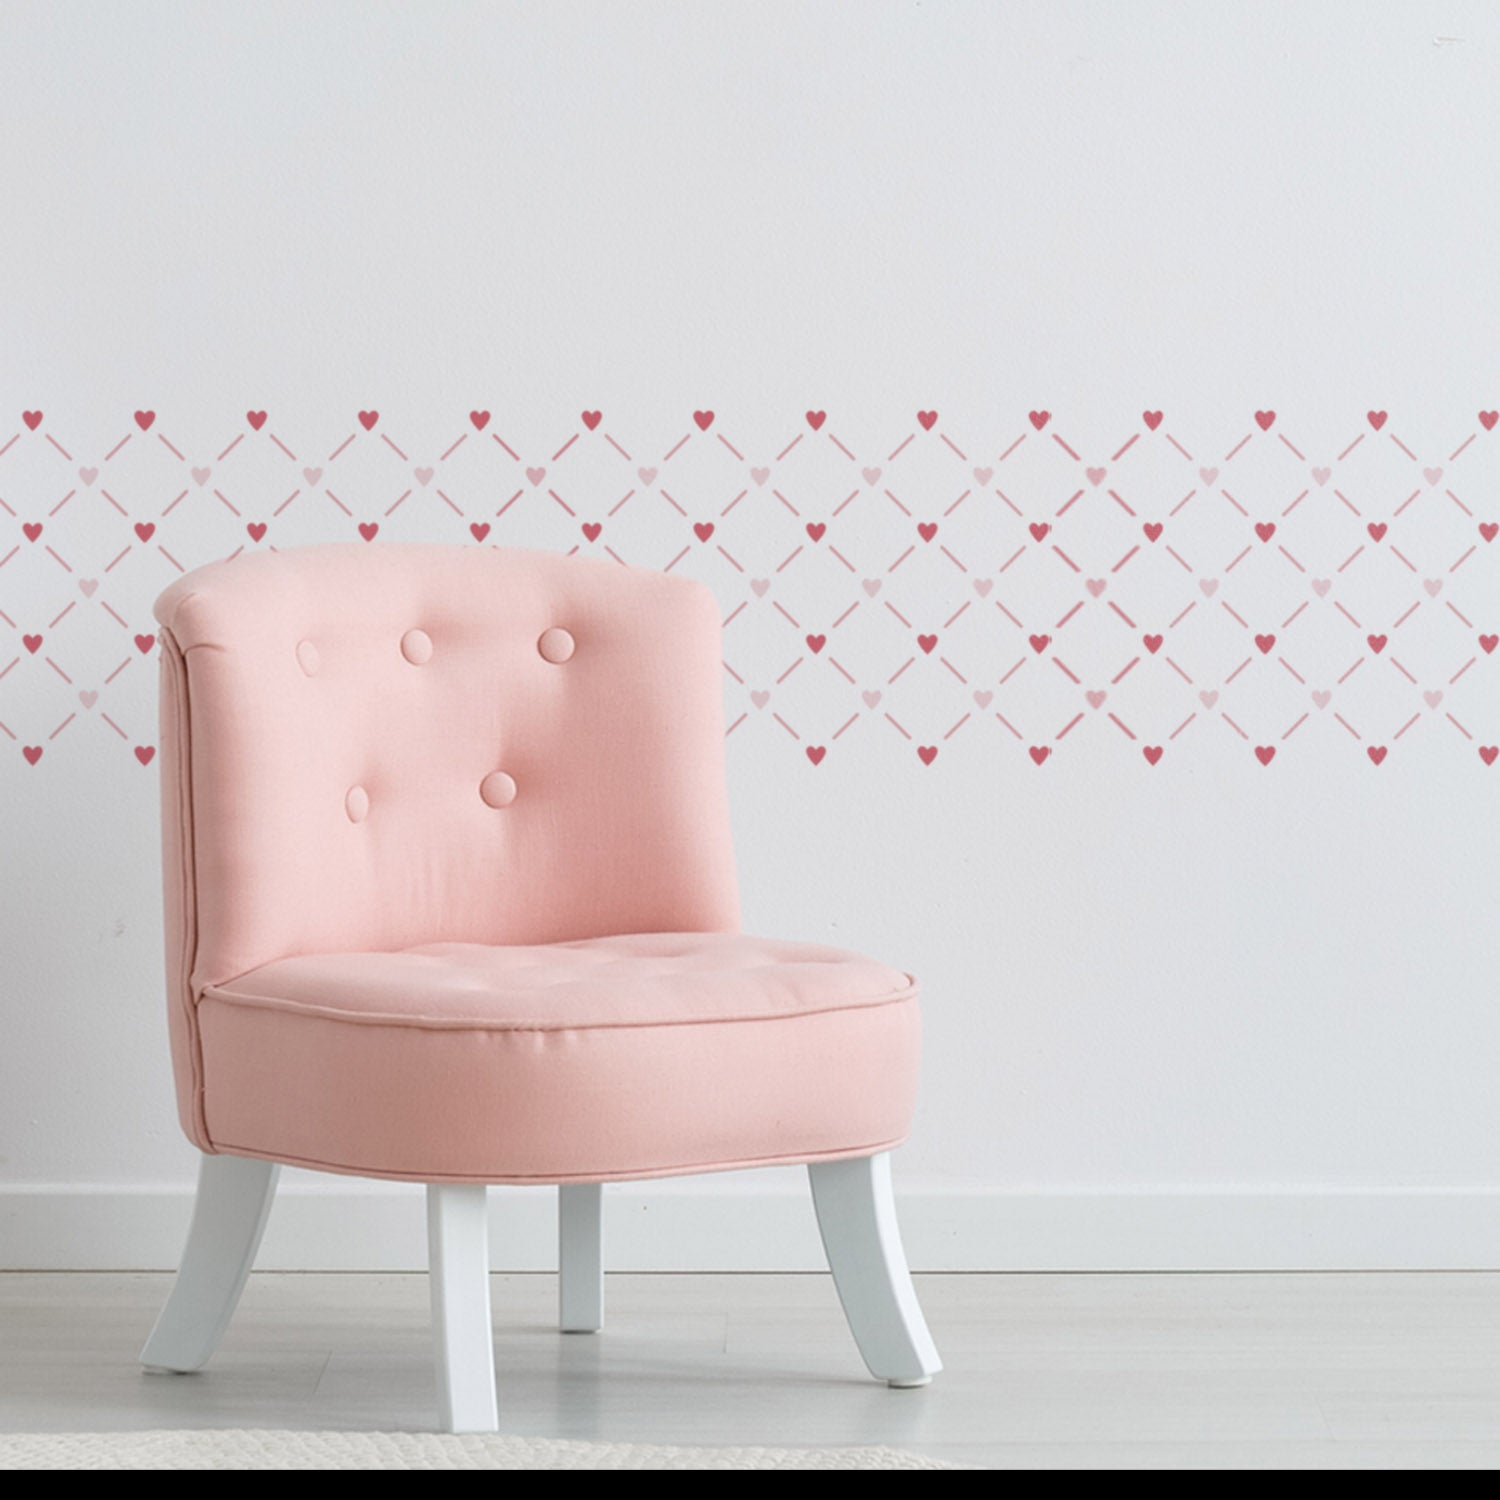 CraftStar Heart Lattice Wall Stencil as a border